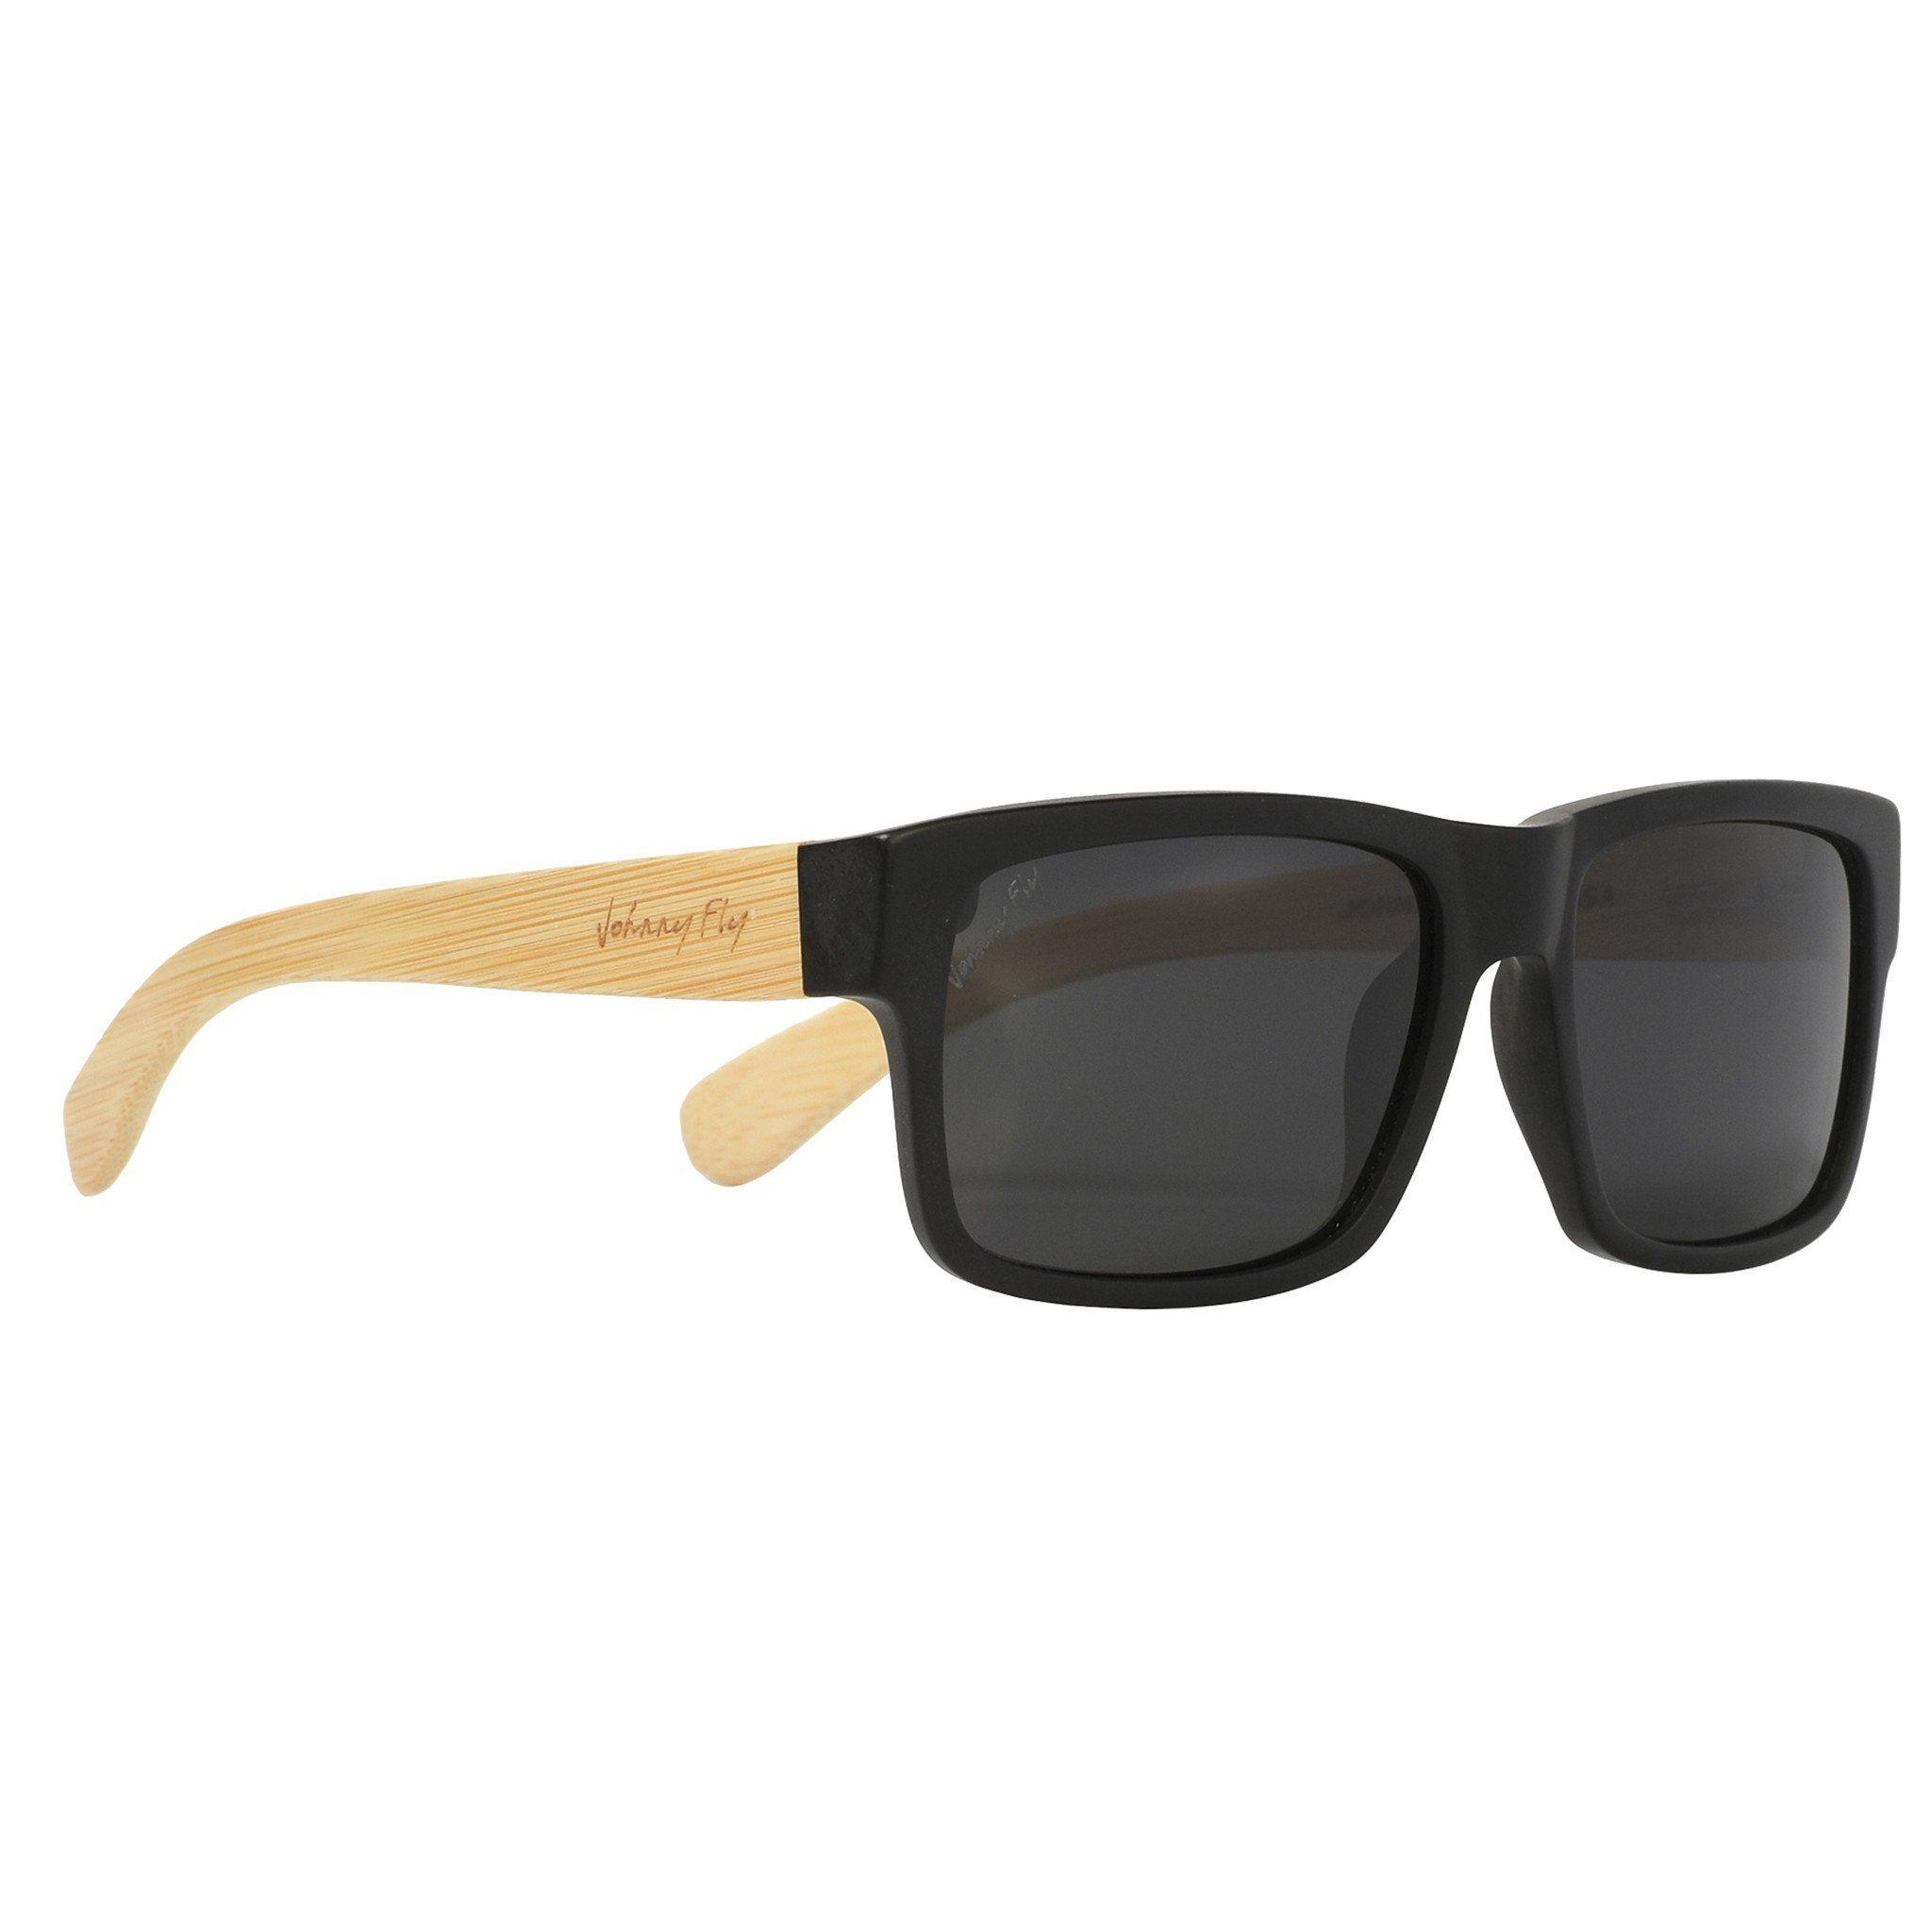 fc452d457b Johnny Fly Aero Fly Bamboo Sunglasses. Bamboo arms. Medical grade acetate  front frame.